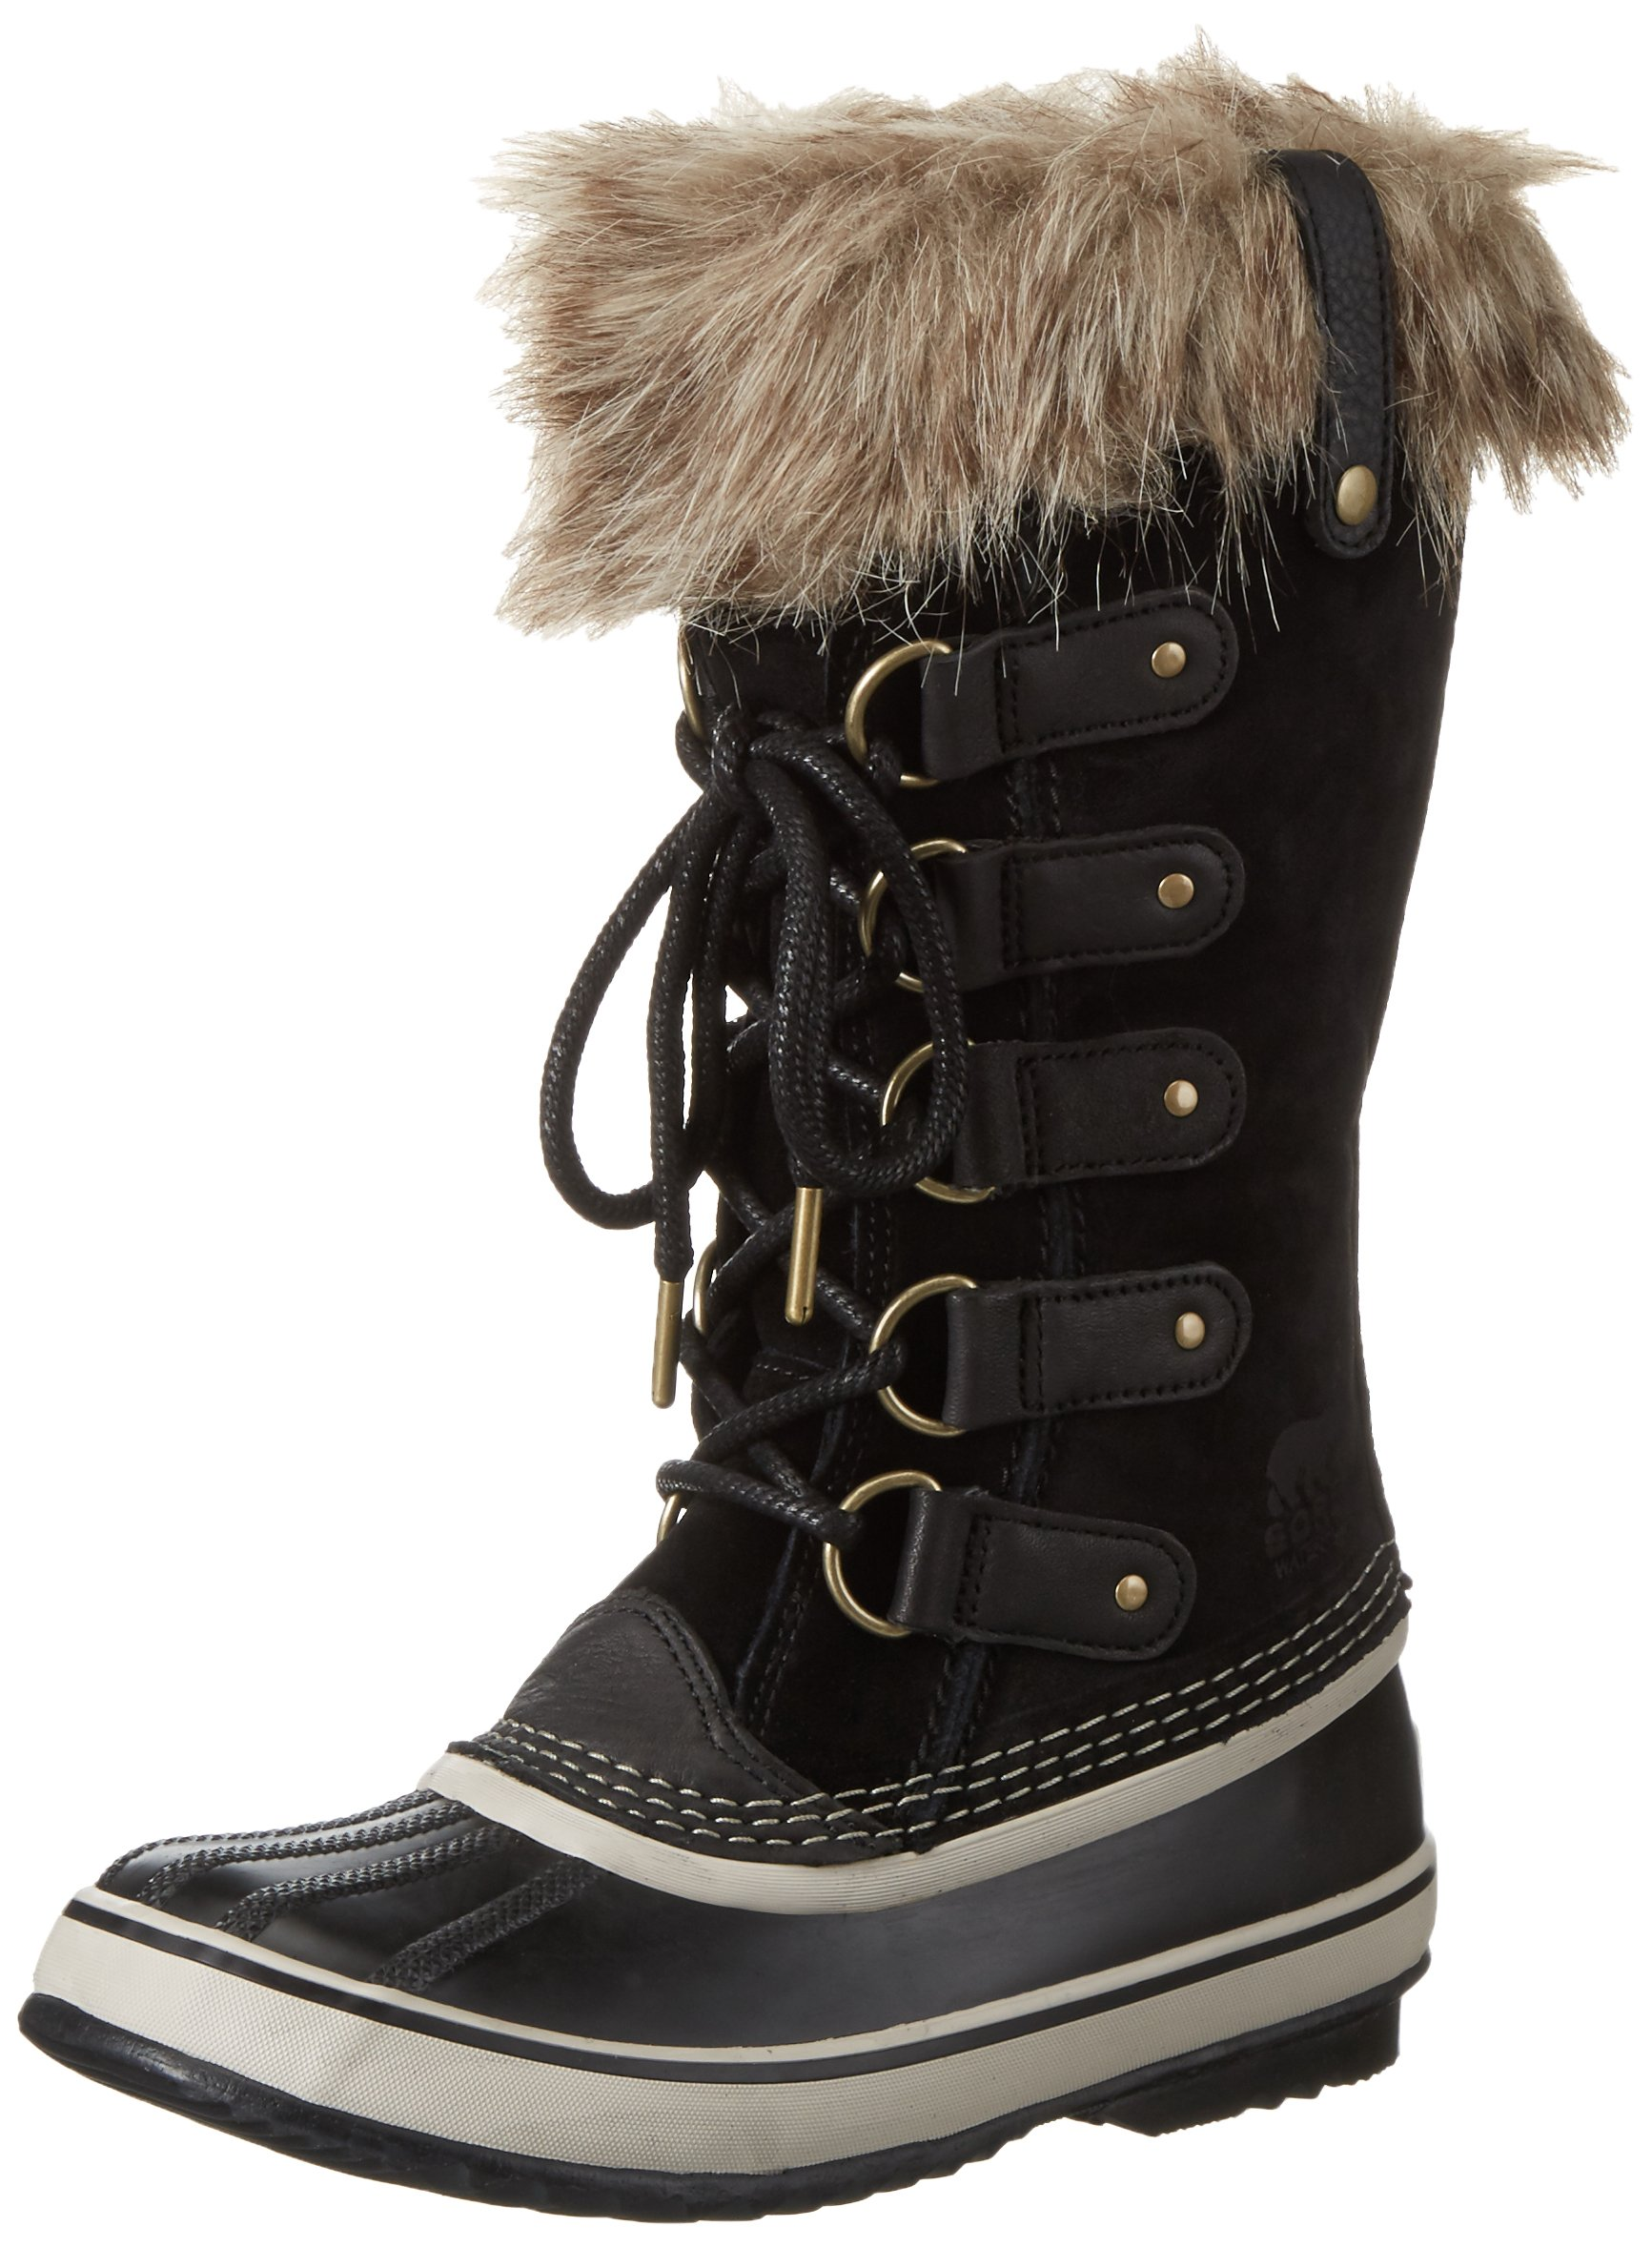 SOREL Women's Joan Of Arctic, Black 2, 6 B-Medium